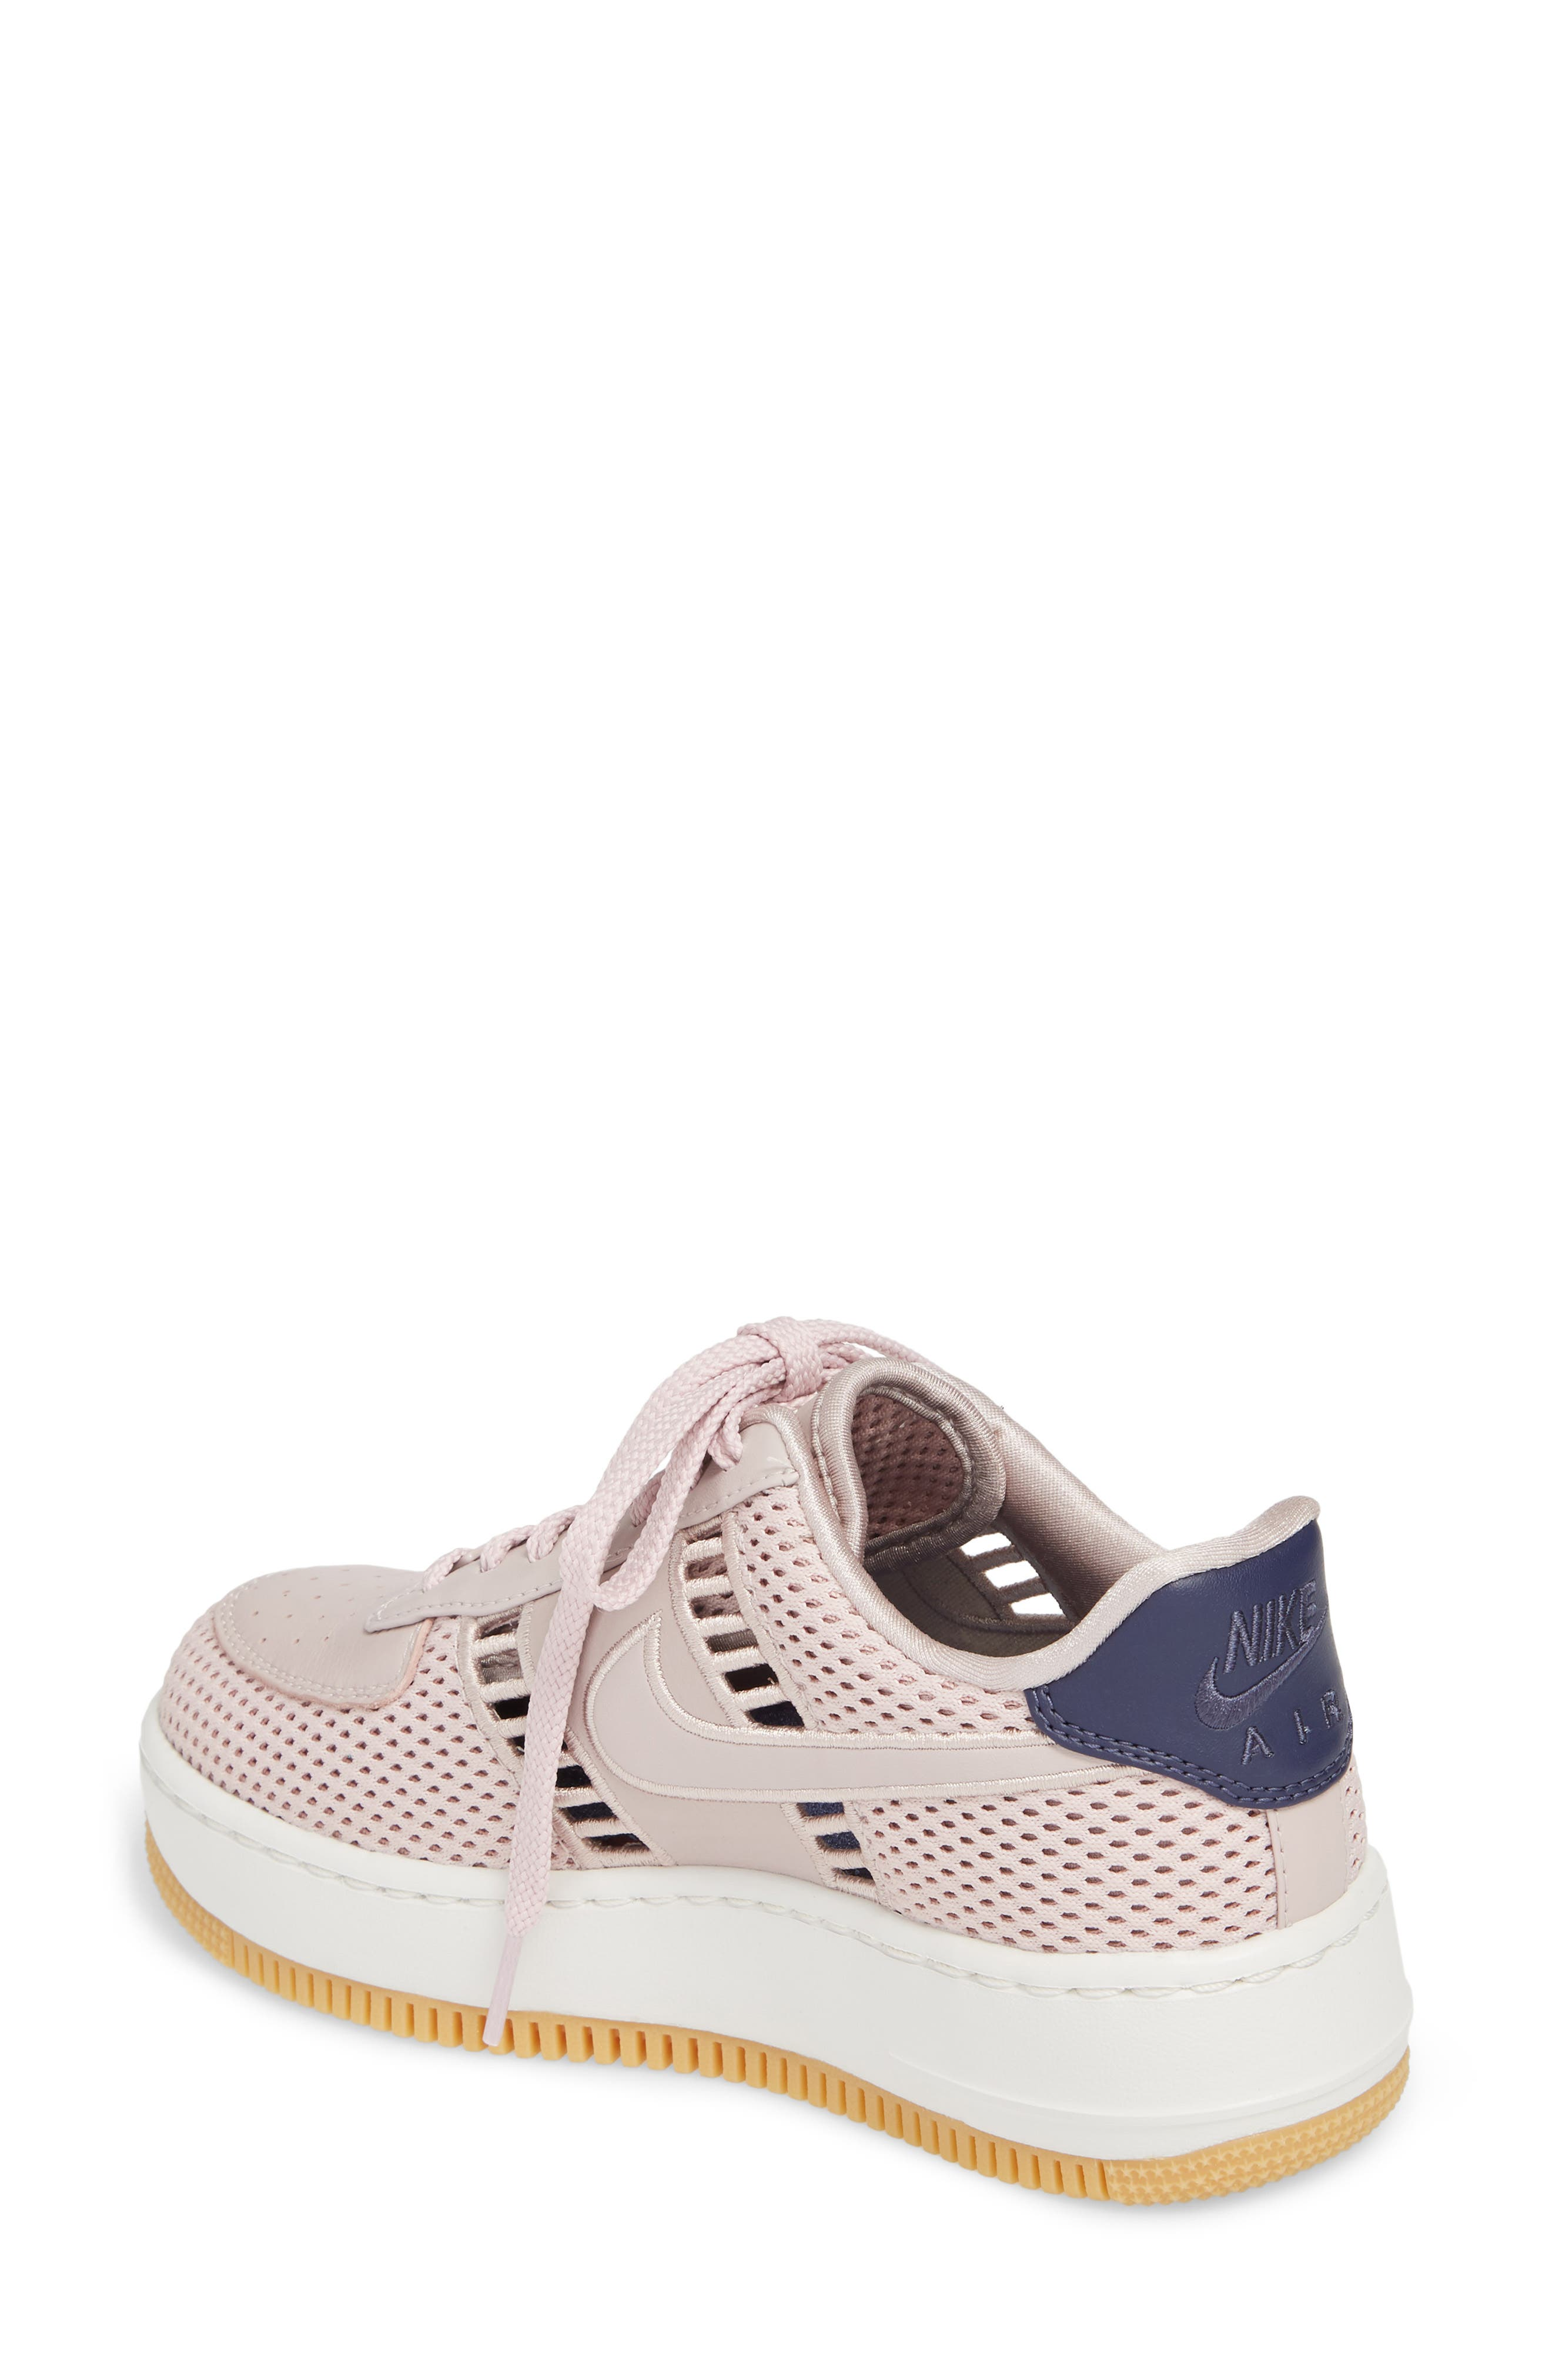 Air Force 1 Upstep SI Mesh Sneaker,                             Alternate thumbnail 2, color,                             Particle Rose/ Summit White